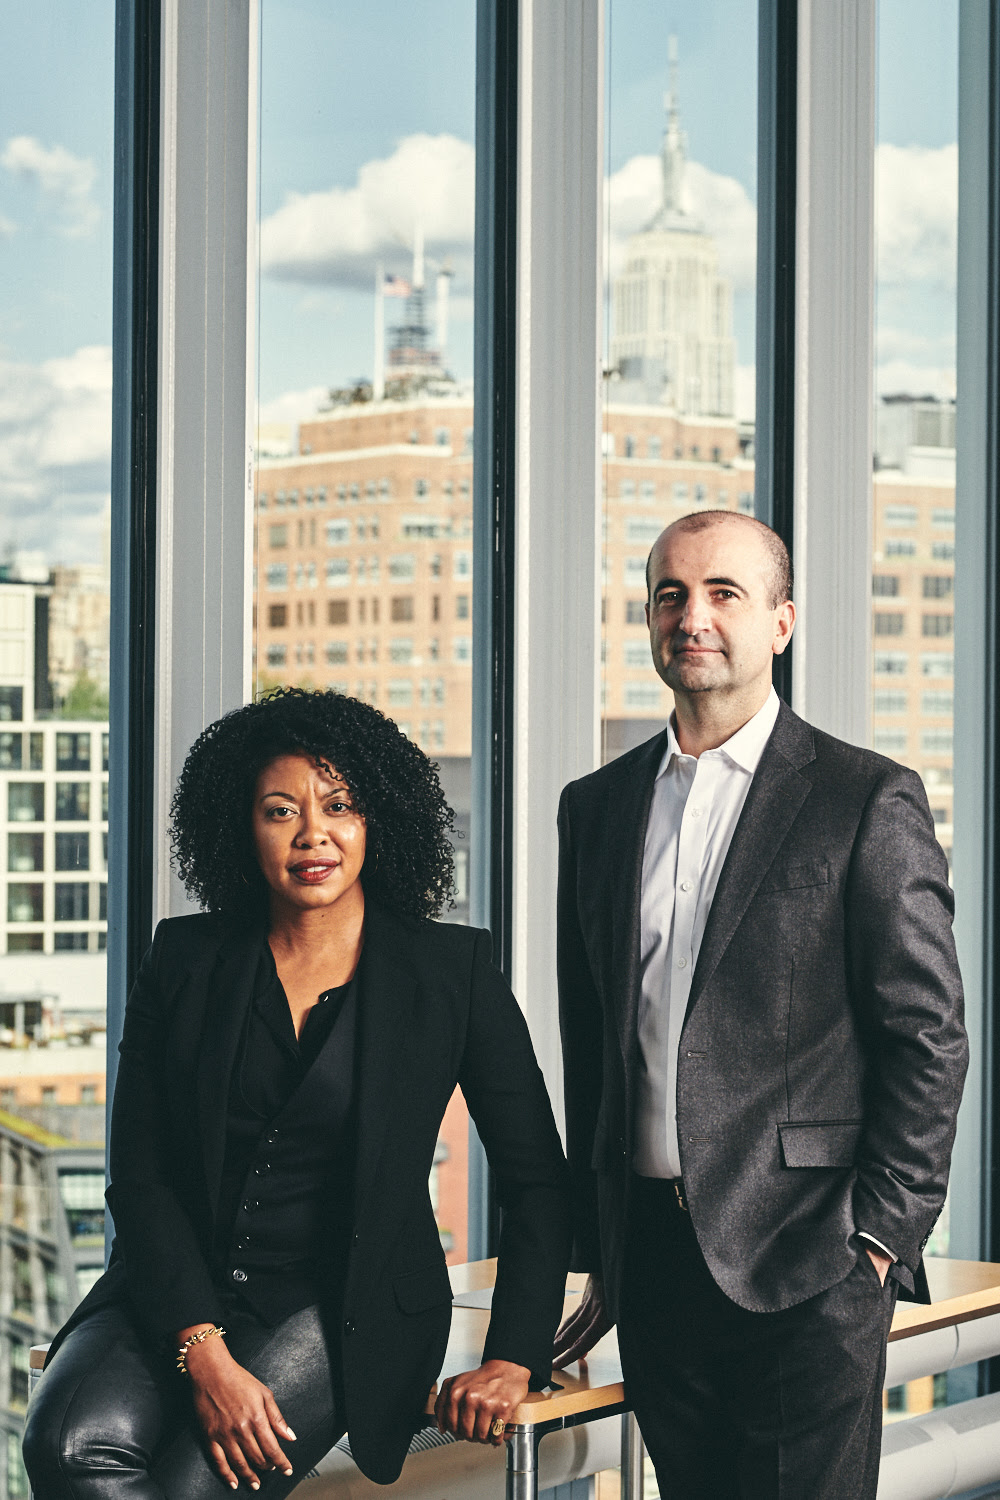 2021 Whitney Biennial Will Be Curated by David Breslin and Adrienne Edwards